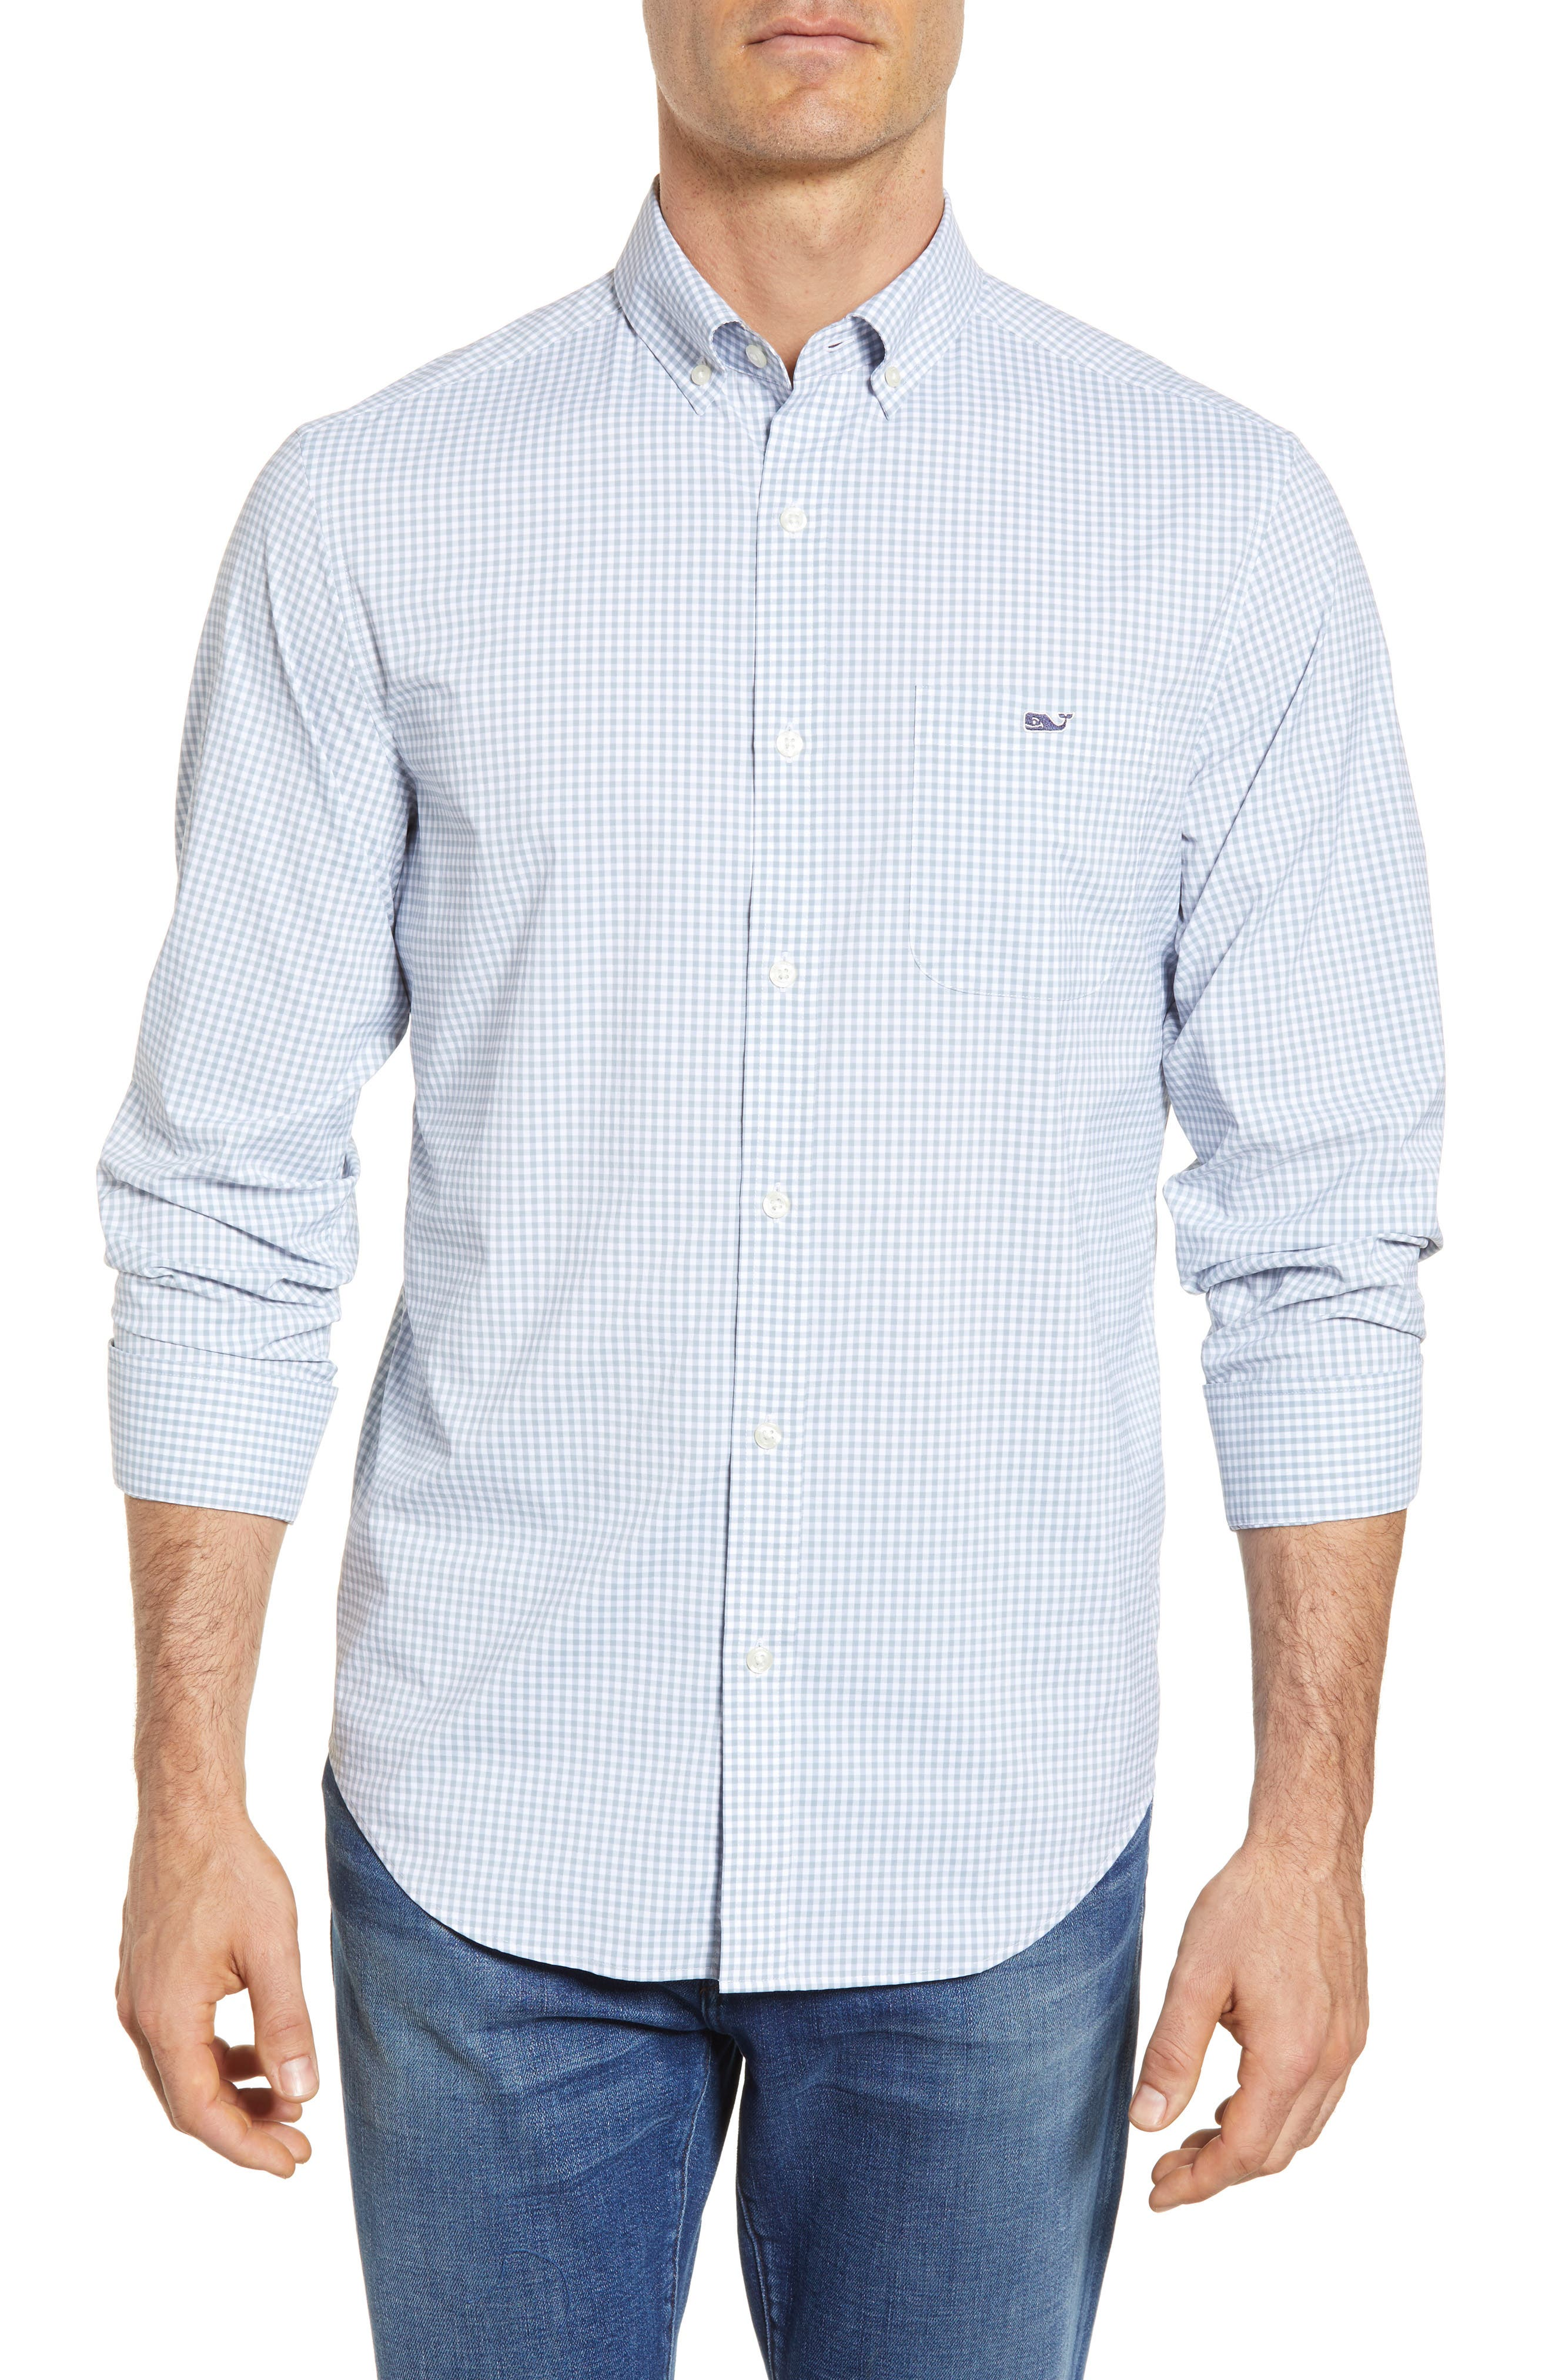 Grand Cay Tucker Regular Fit Gingham Performance Sport Shirt,                             Main thumbnail 1, color,                             023